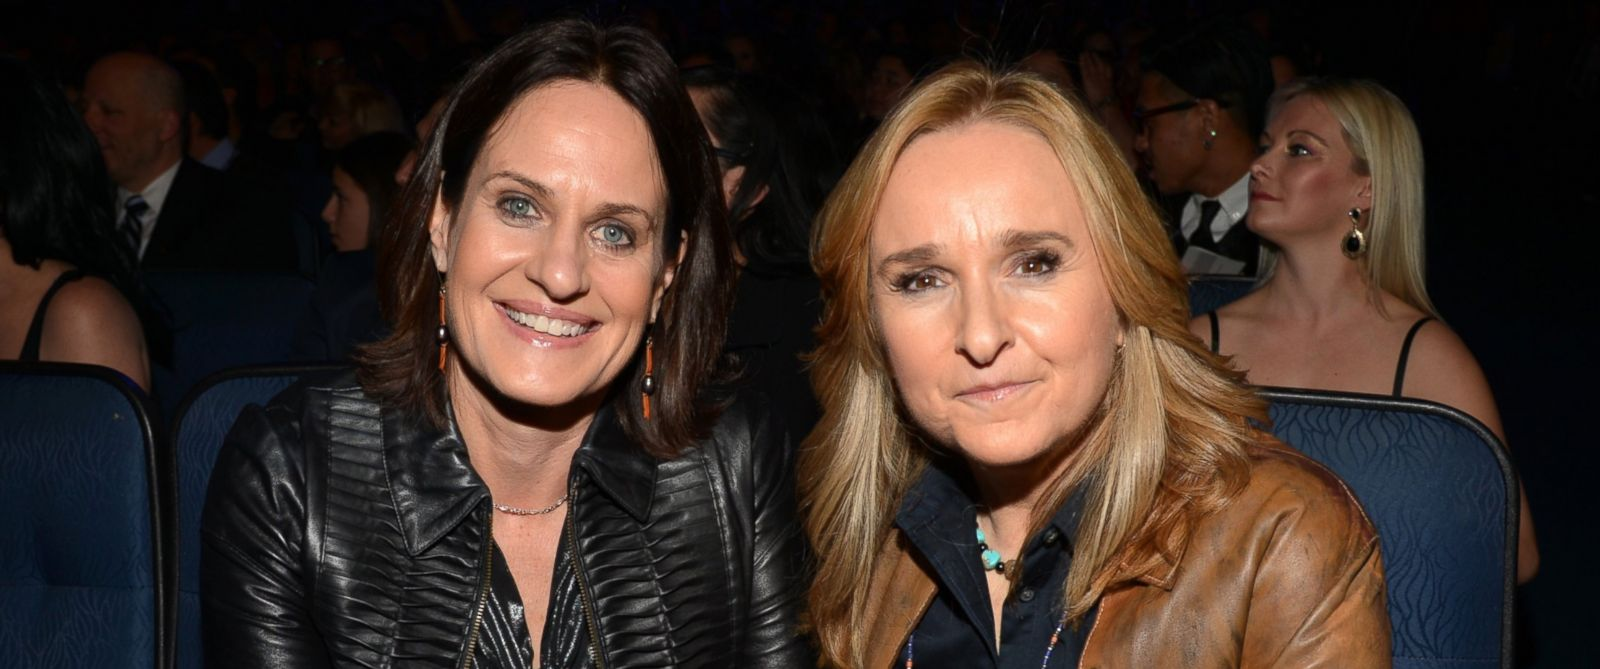 PHOTO: Musician Melissa Etheridge and Linda Wallem attend The GRAMMY Nominations Concert Live!! Countdown to Musics Biggest Night at Nokia Theatre L.A. Live on December 6, 2013 in Los Angeles, California.